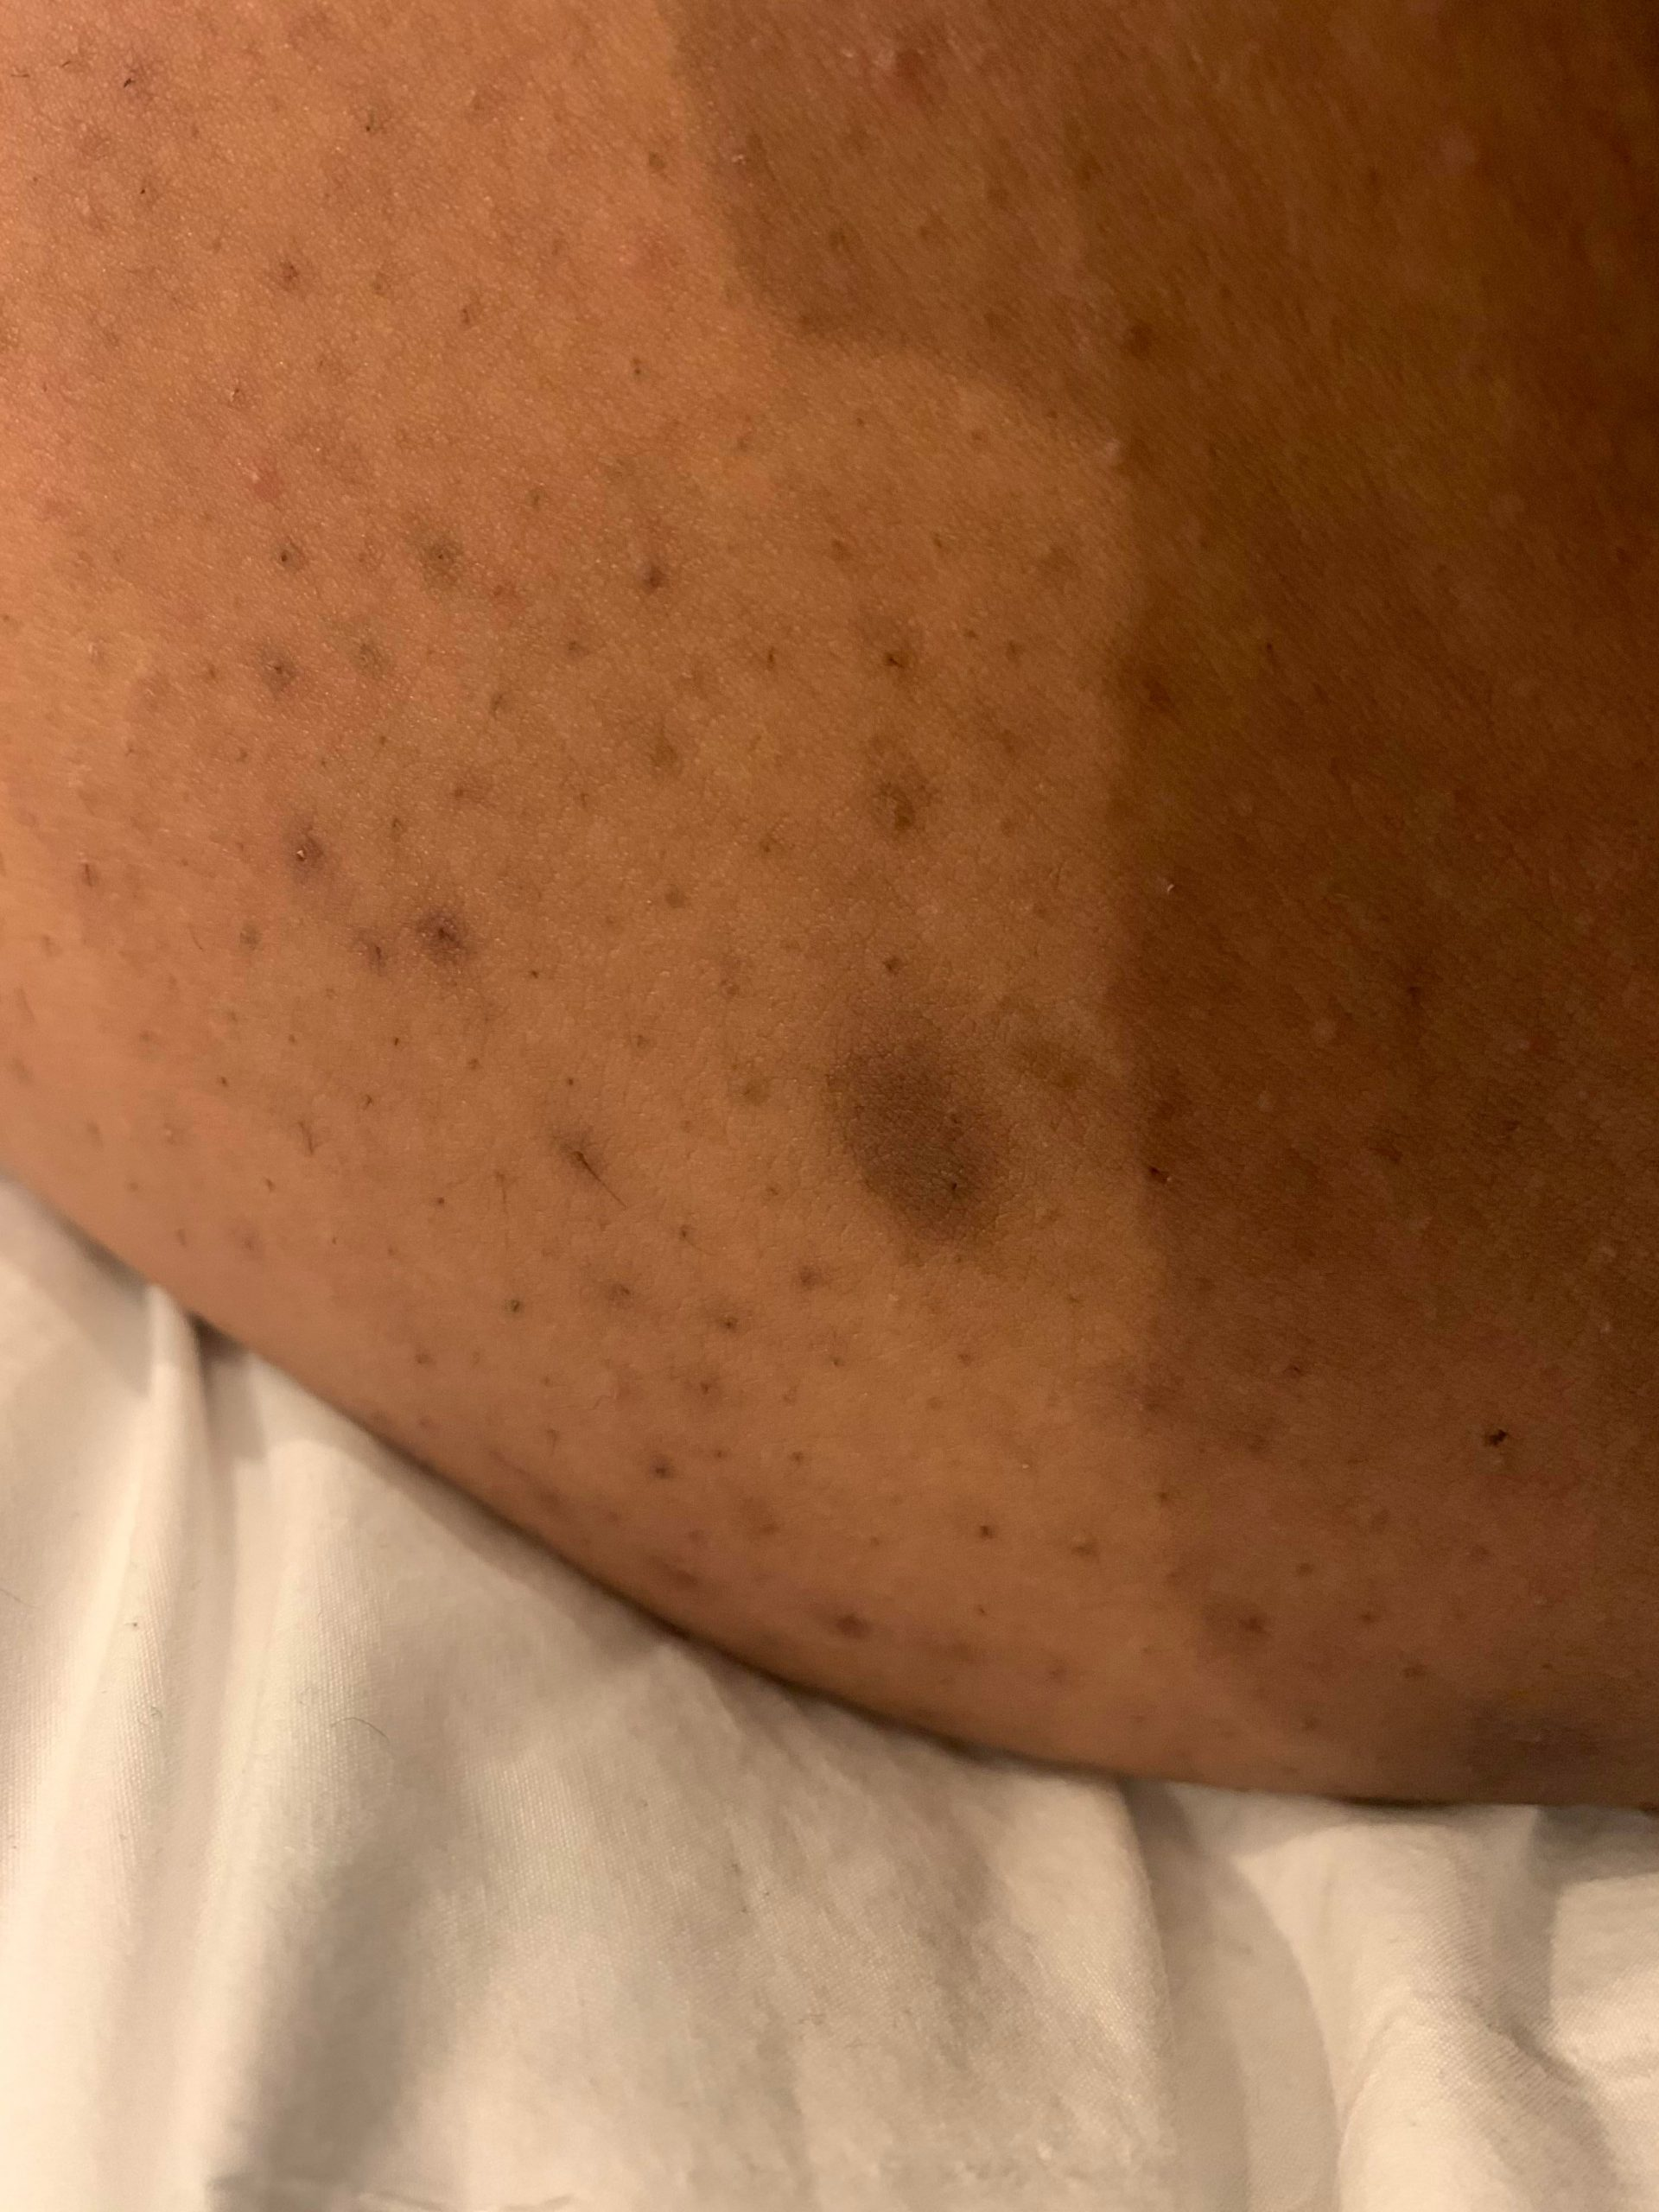 [Skin Concern] I have these kinda black dots all over my thighs, outside and inner. Whenever I try to touch them they don't really feel like anything. How can I get rid of them?